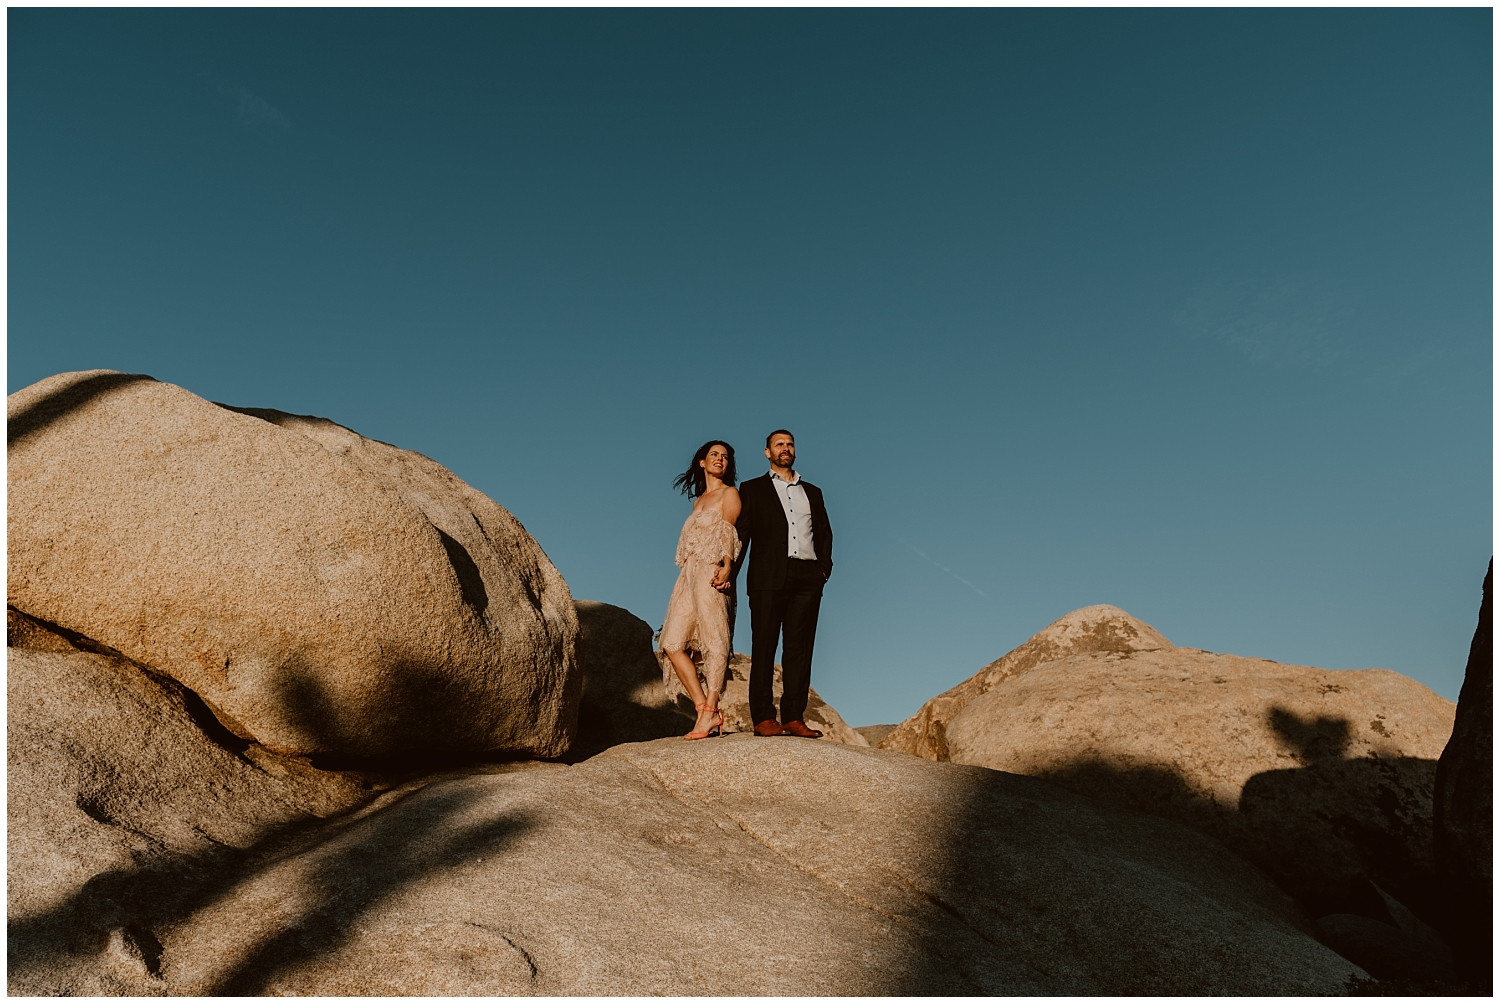 Cap-Rock-Joshua-Tree-Elopement-0066.jpg